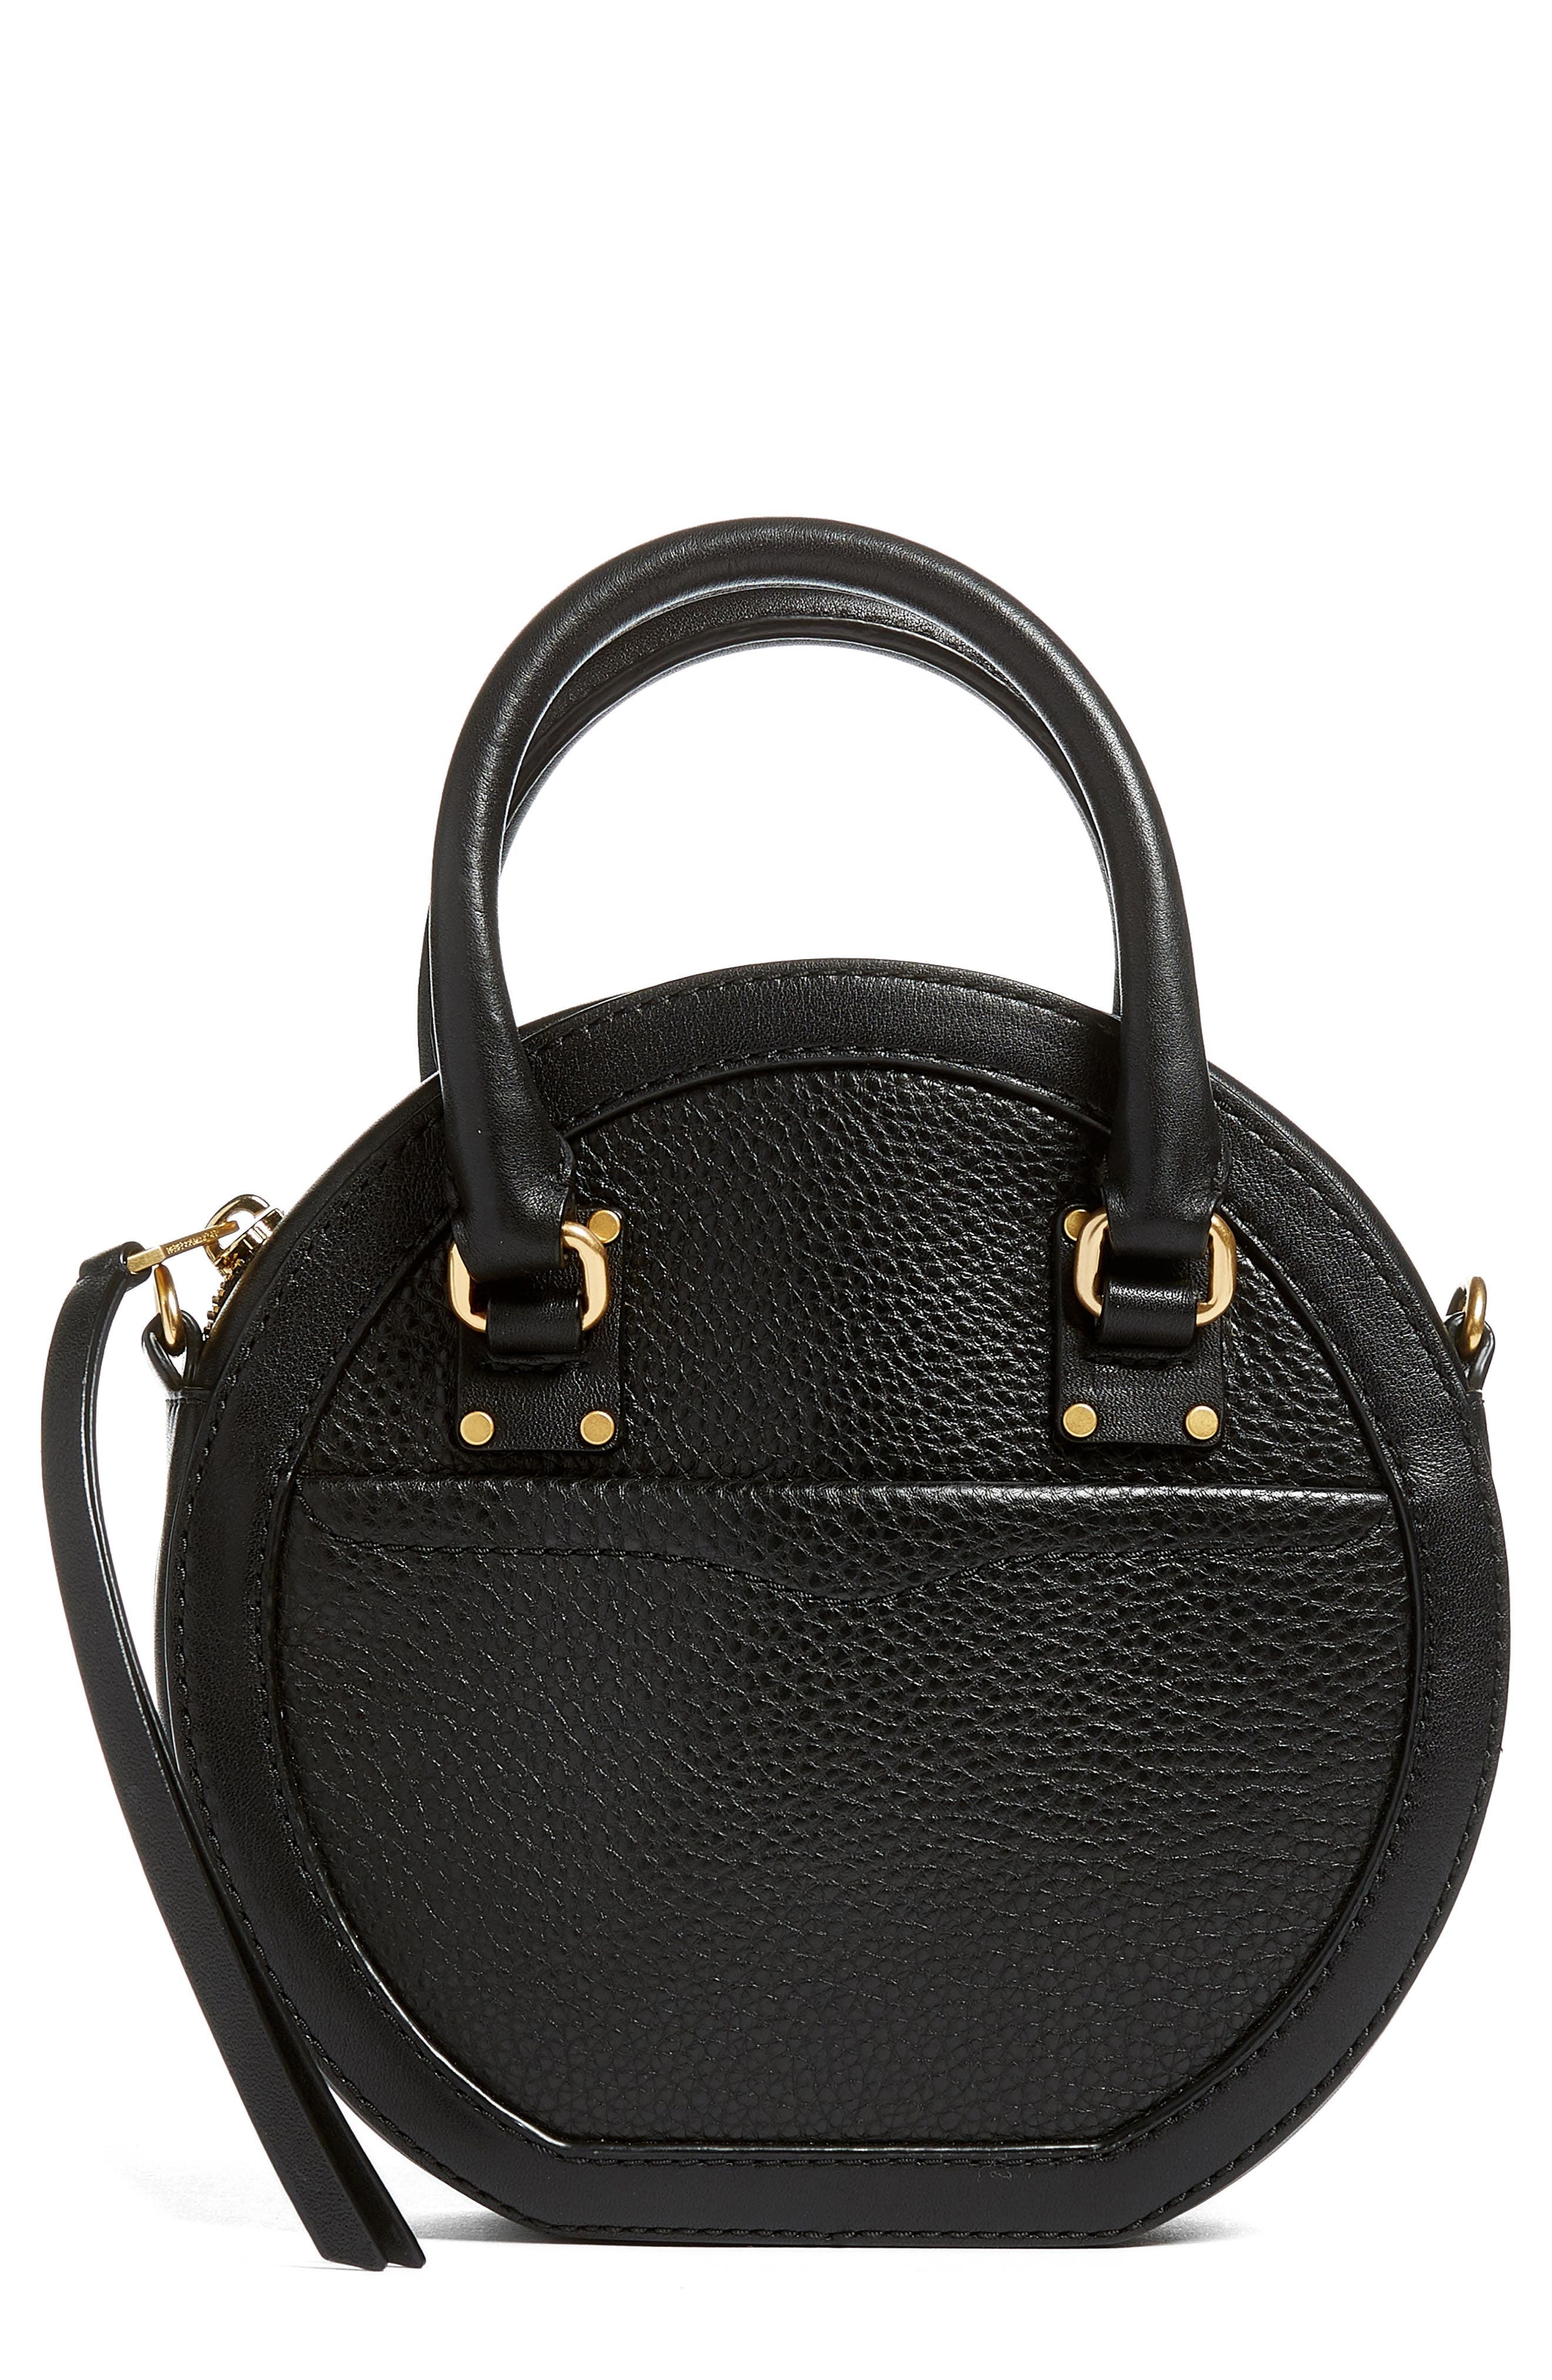 Bree Circle Leather Crossbody Bag,                         Main,                         color, Black